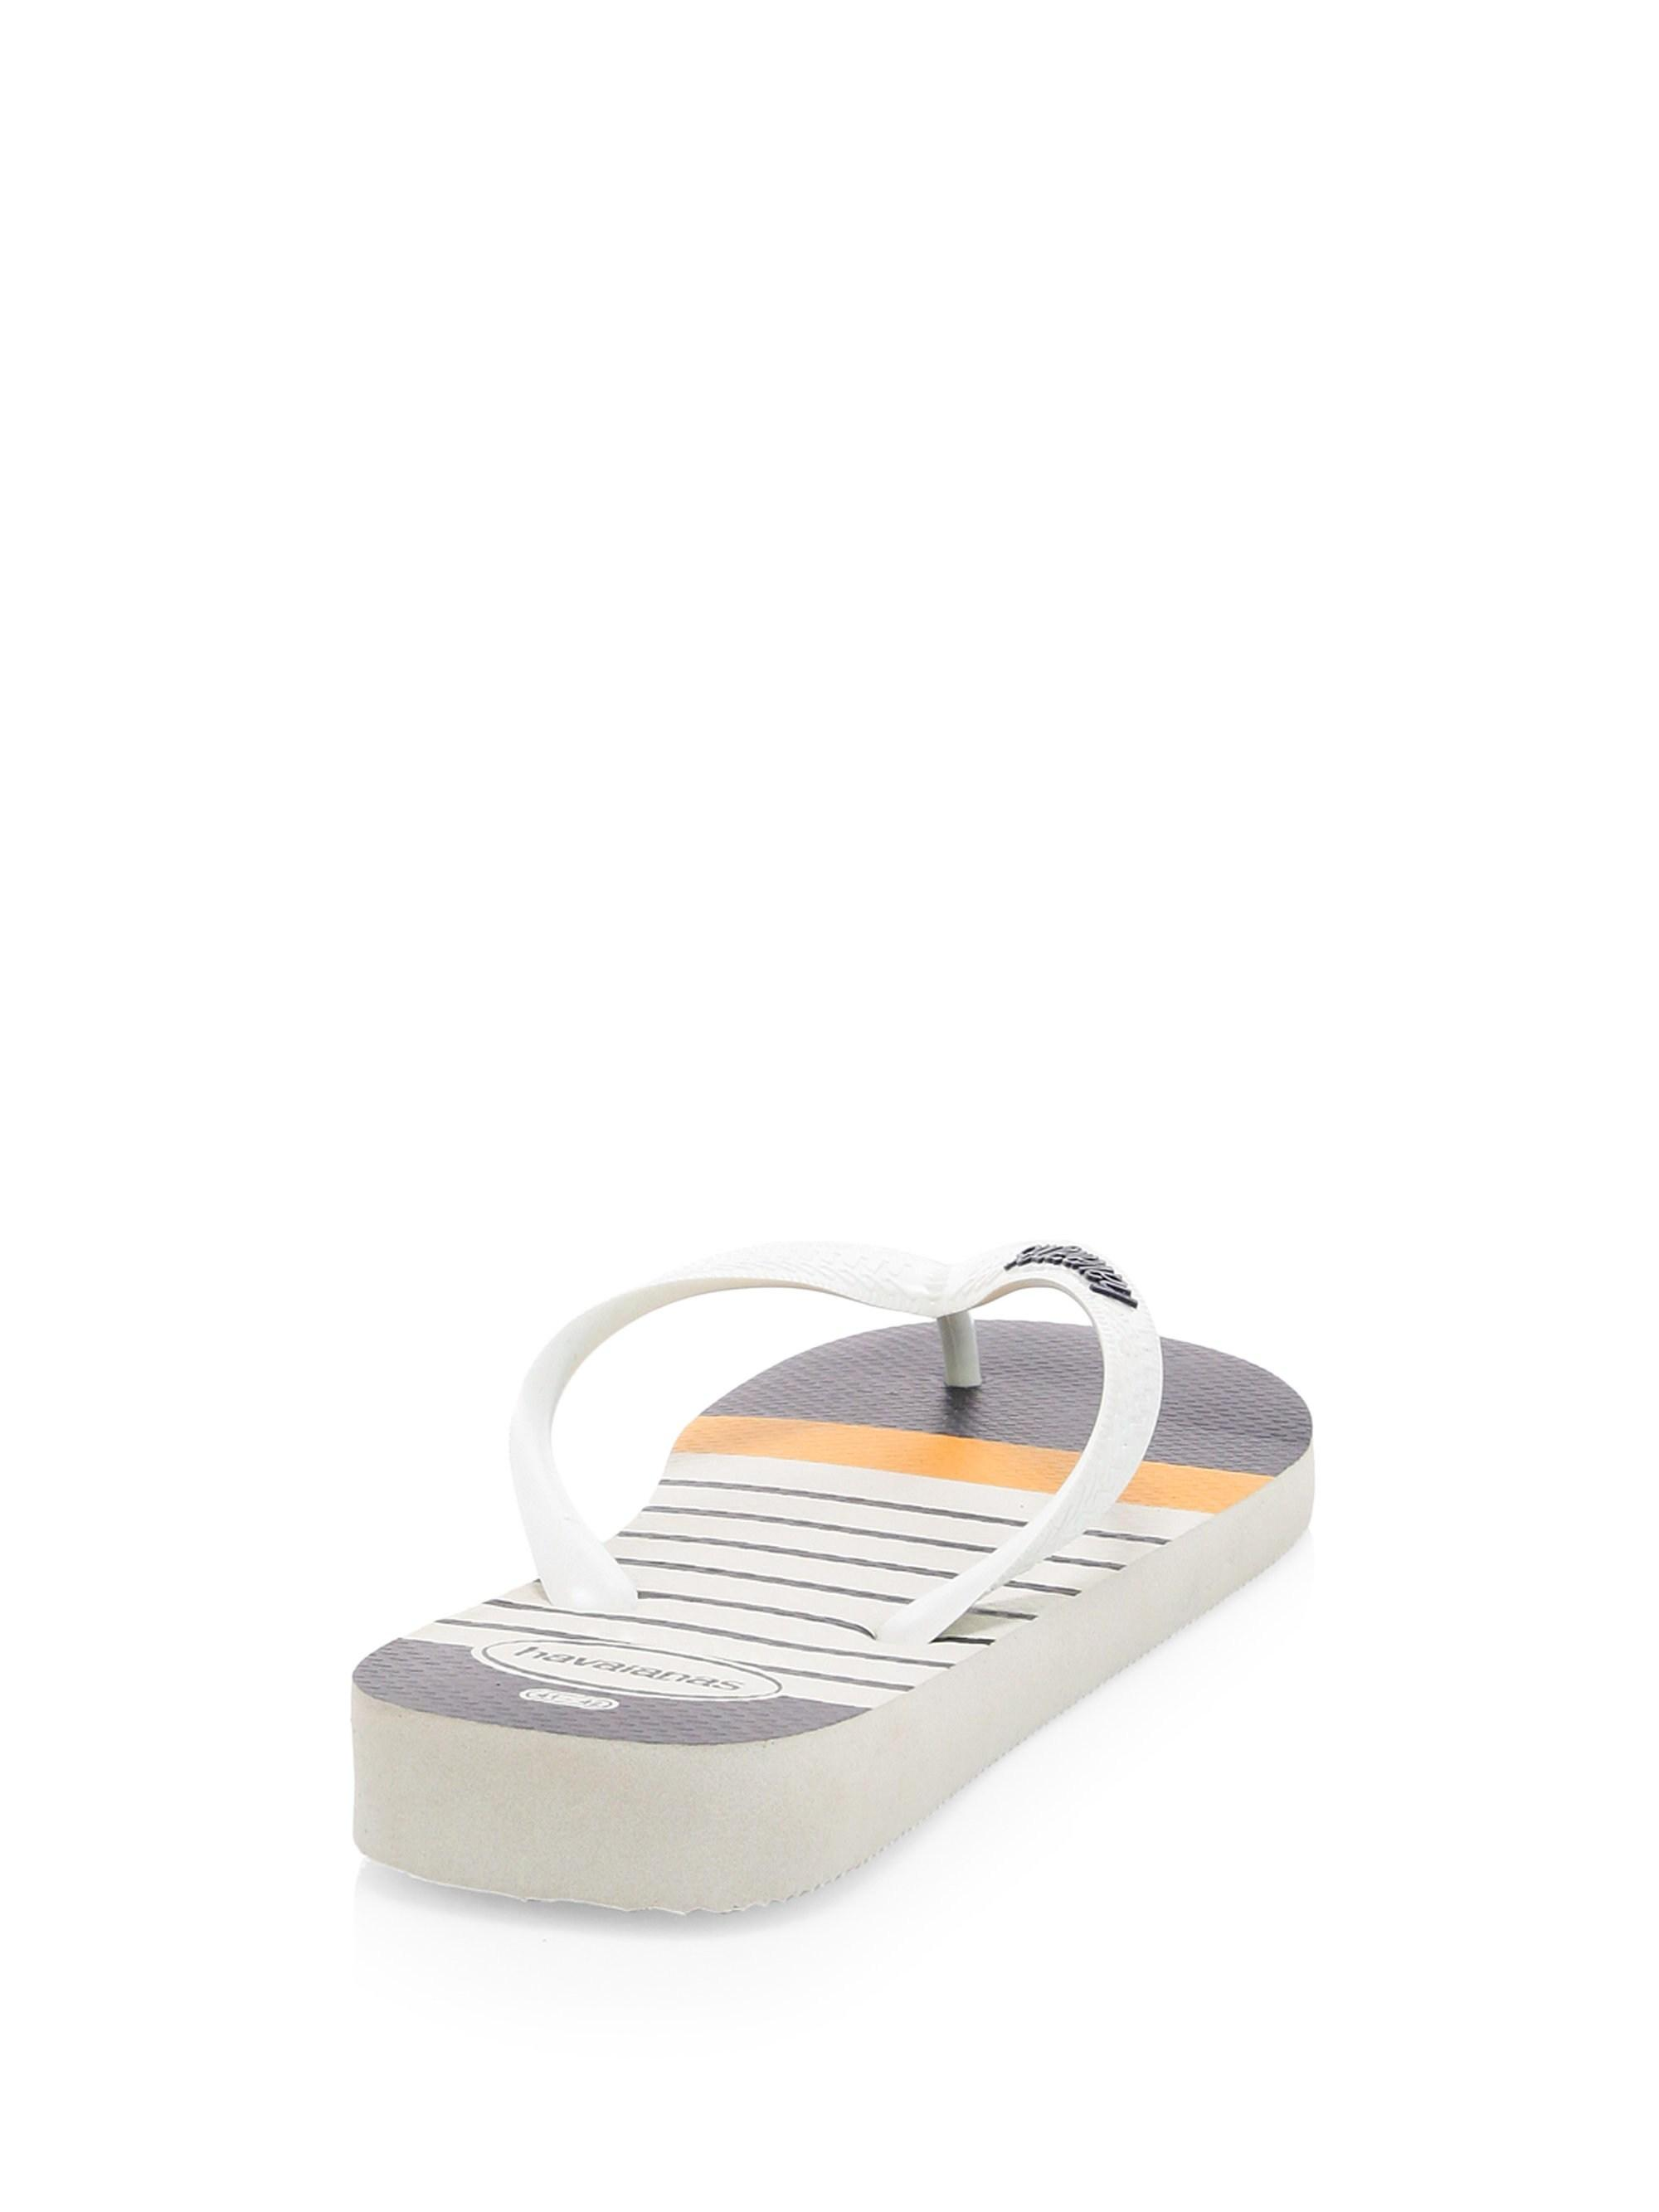 4a1613d4f78 Lyst - Havaianas Men s Nautical Thong Flip-flops - White - Size 45-46 (13)  in White for Men - Save 17%